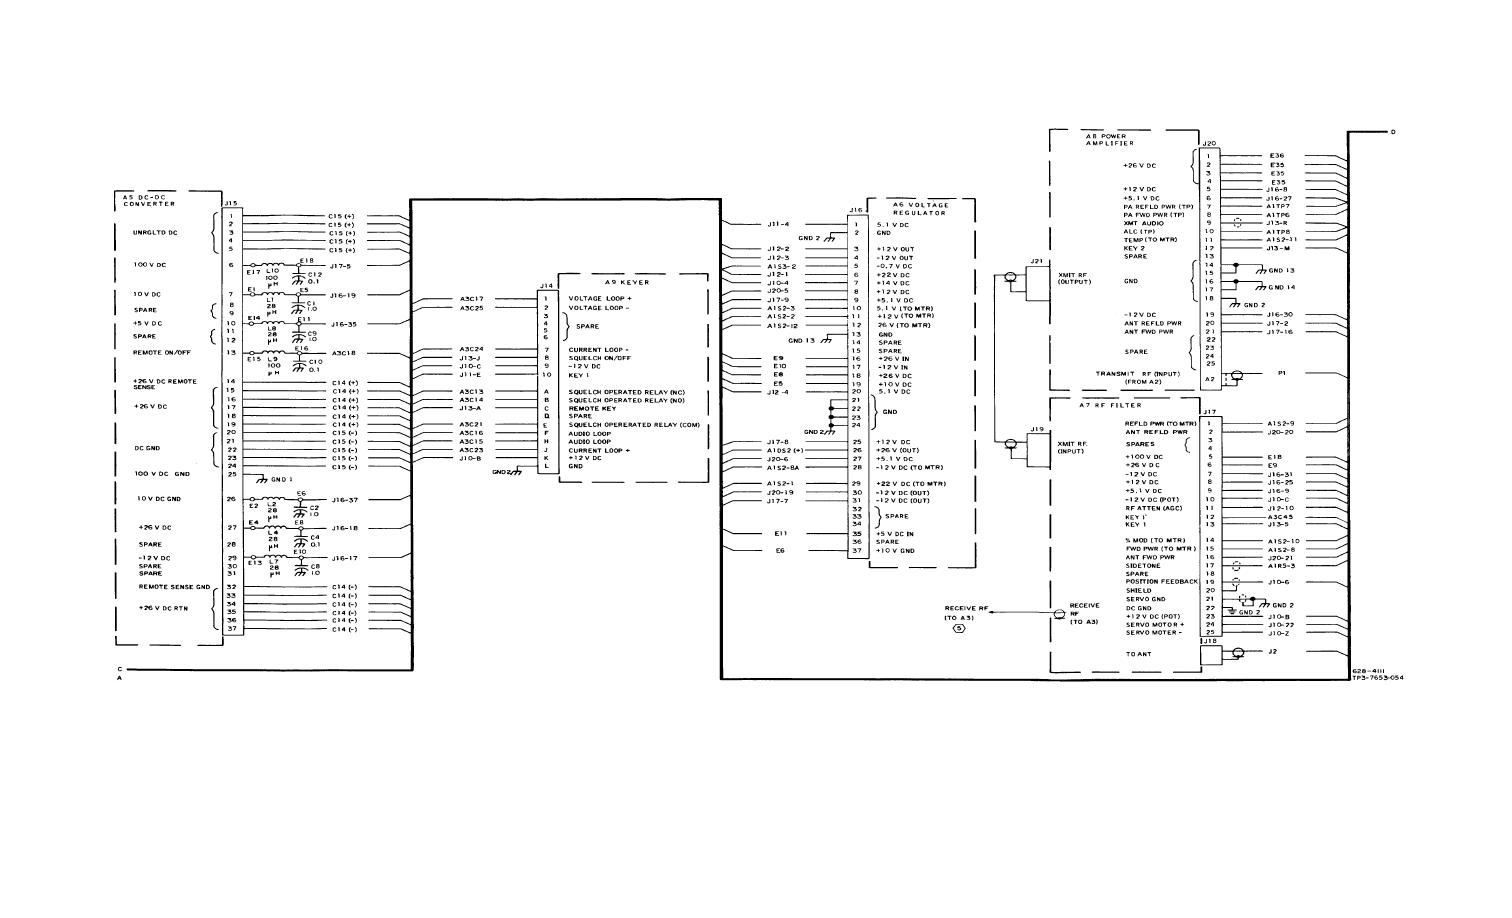 Figure FO-33. Chassis A10, Schematic Diagram (Sheet 4 of 5)